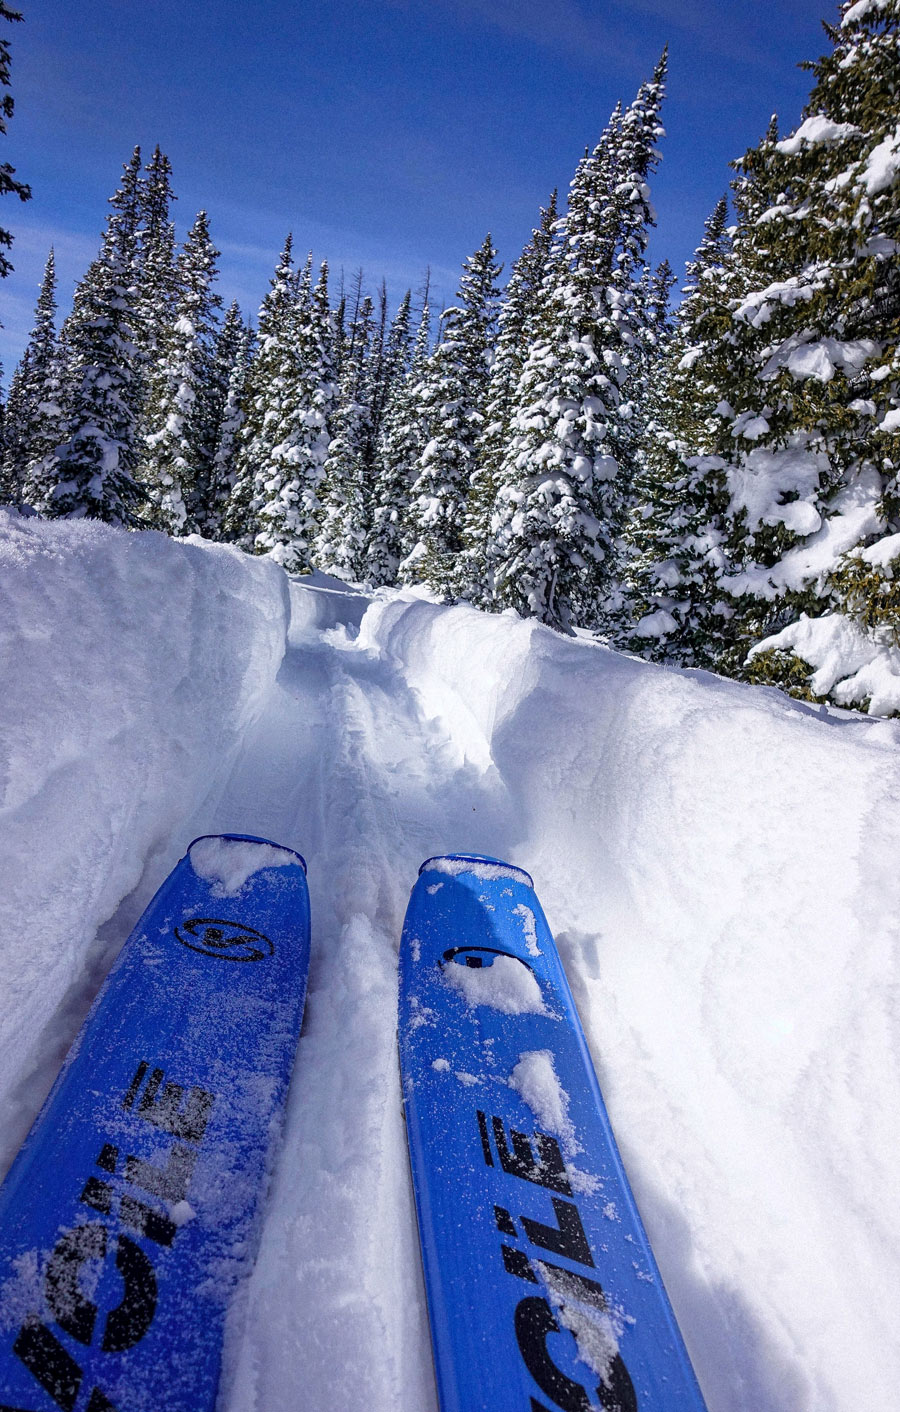 Voile Vectors are the ideal ski for long backcountry tours with variable conditions.